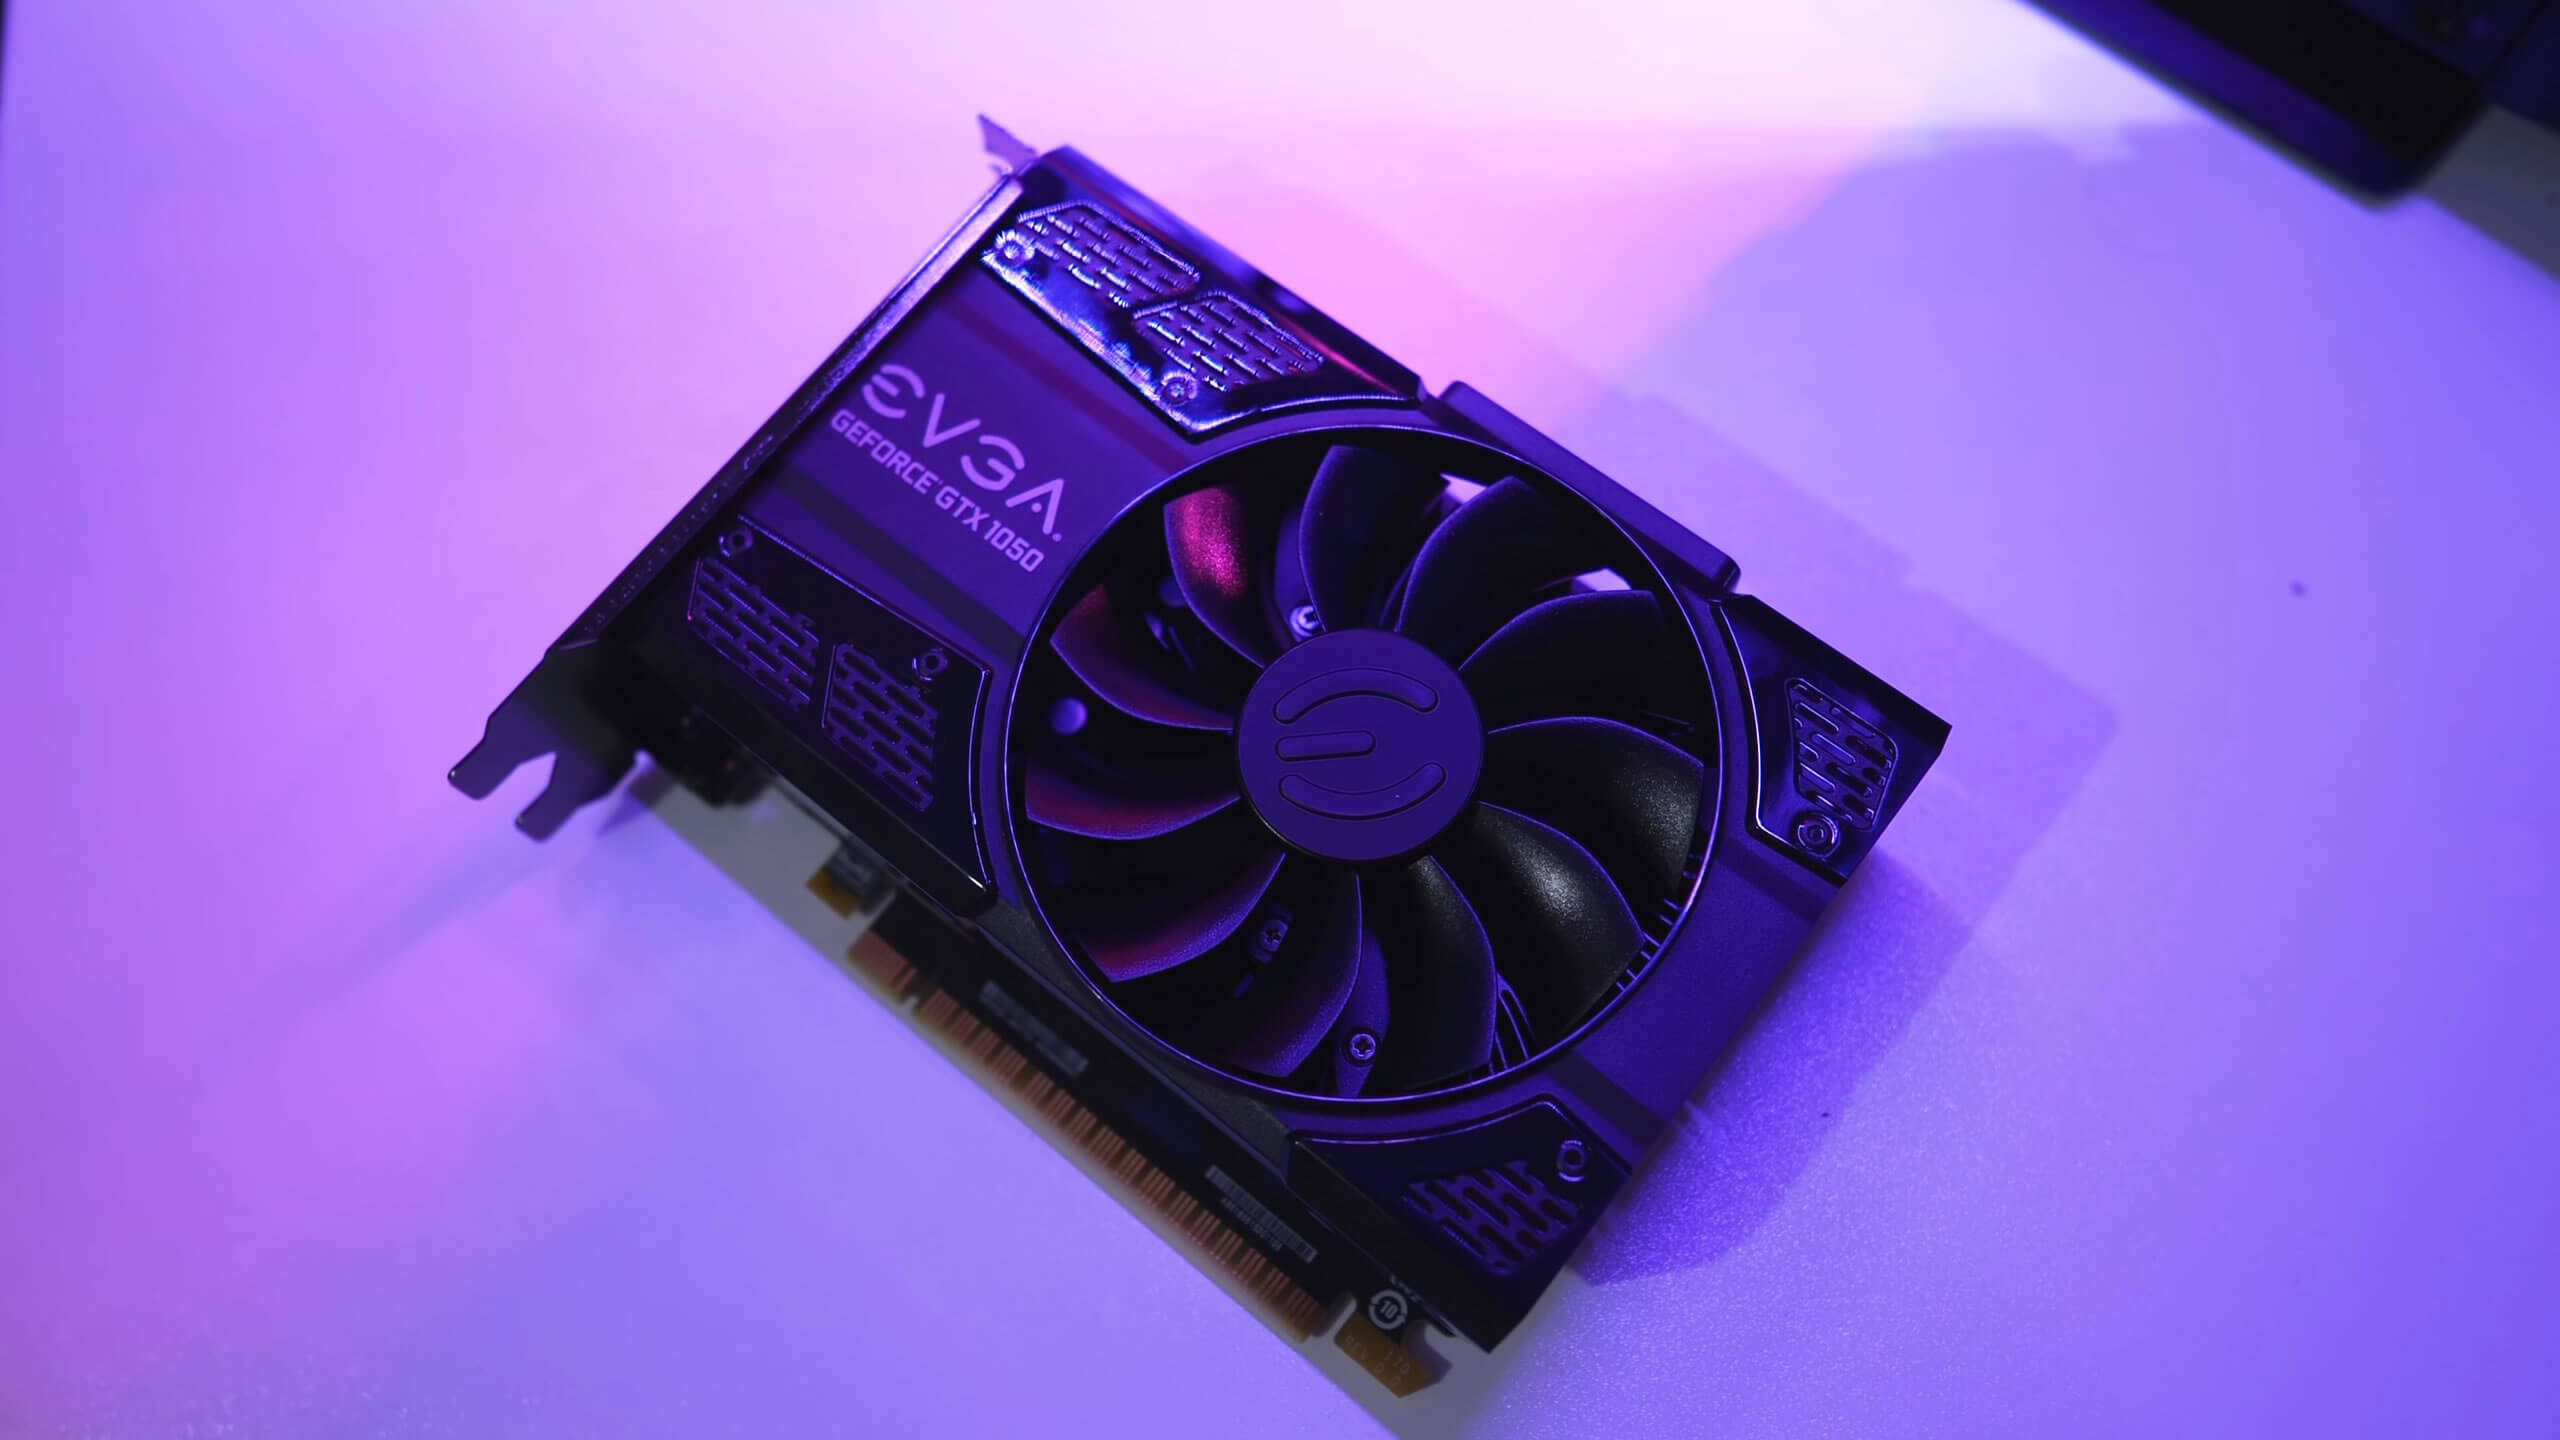 The New 3GB GeForce GTX 1050 Good Product Or Misleading